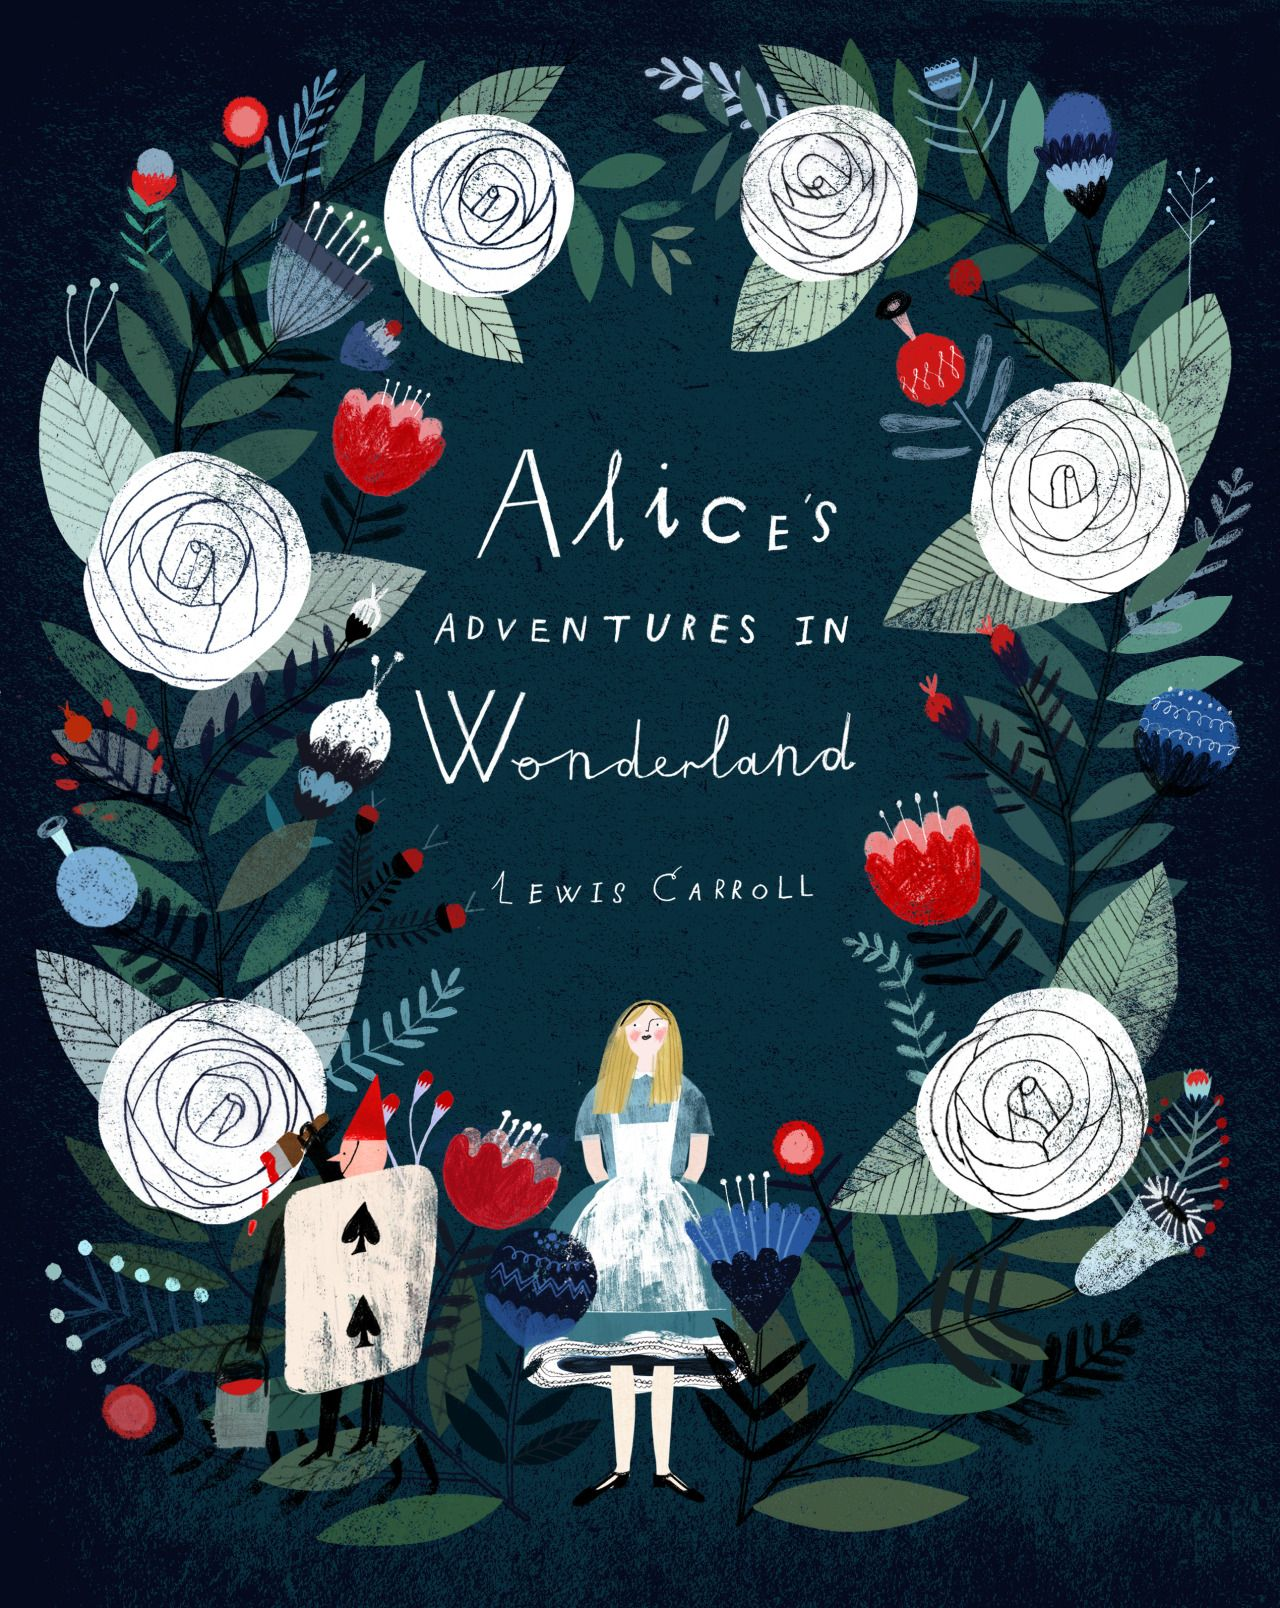 Children S Book Cover Canvas Art : Alice s adventures in wonderland by lewis carroll design